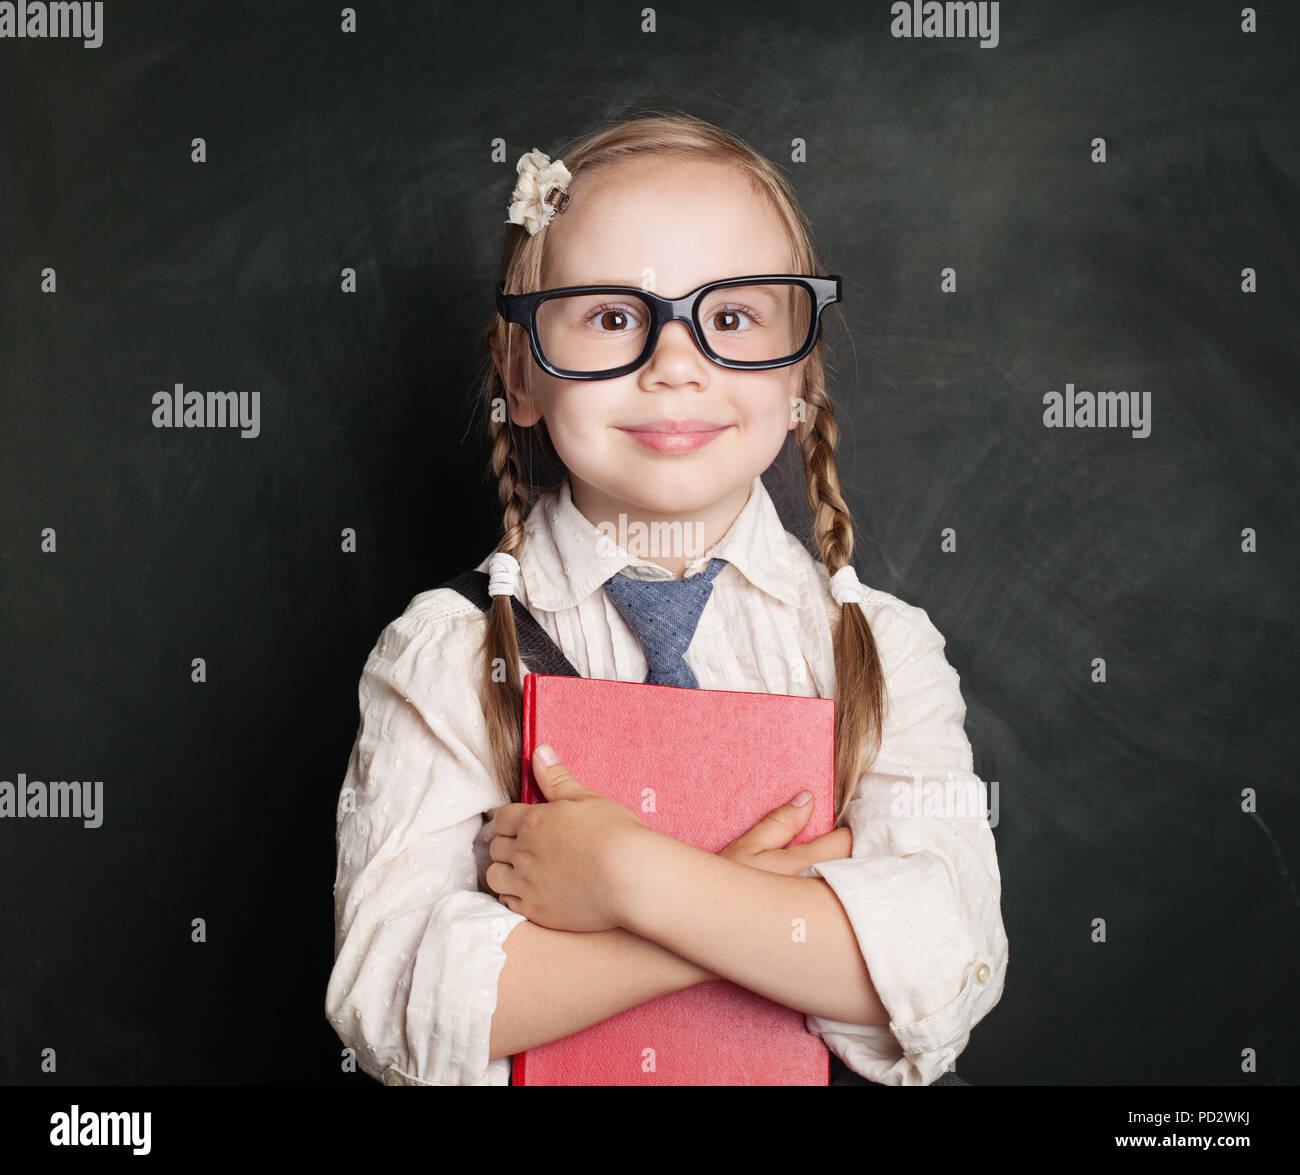 d4a2ed8111f2 Child with book. Small schoolgirl in uniform clothes holding book and  smiling against green chalk board background. Back to school, children  learning